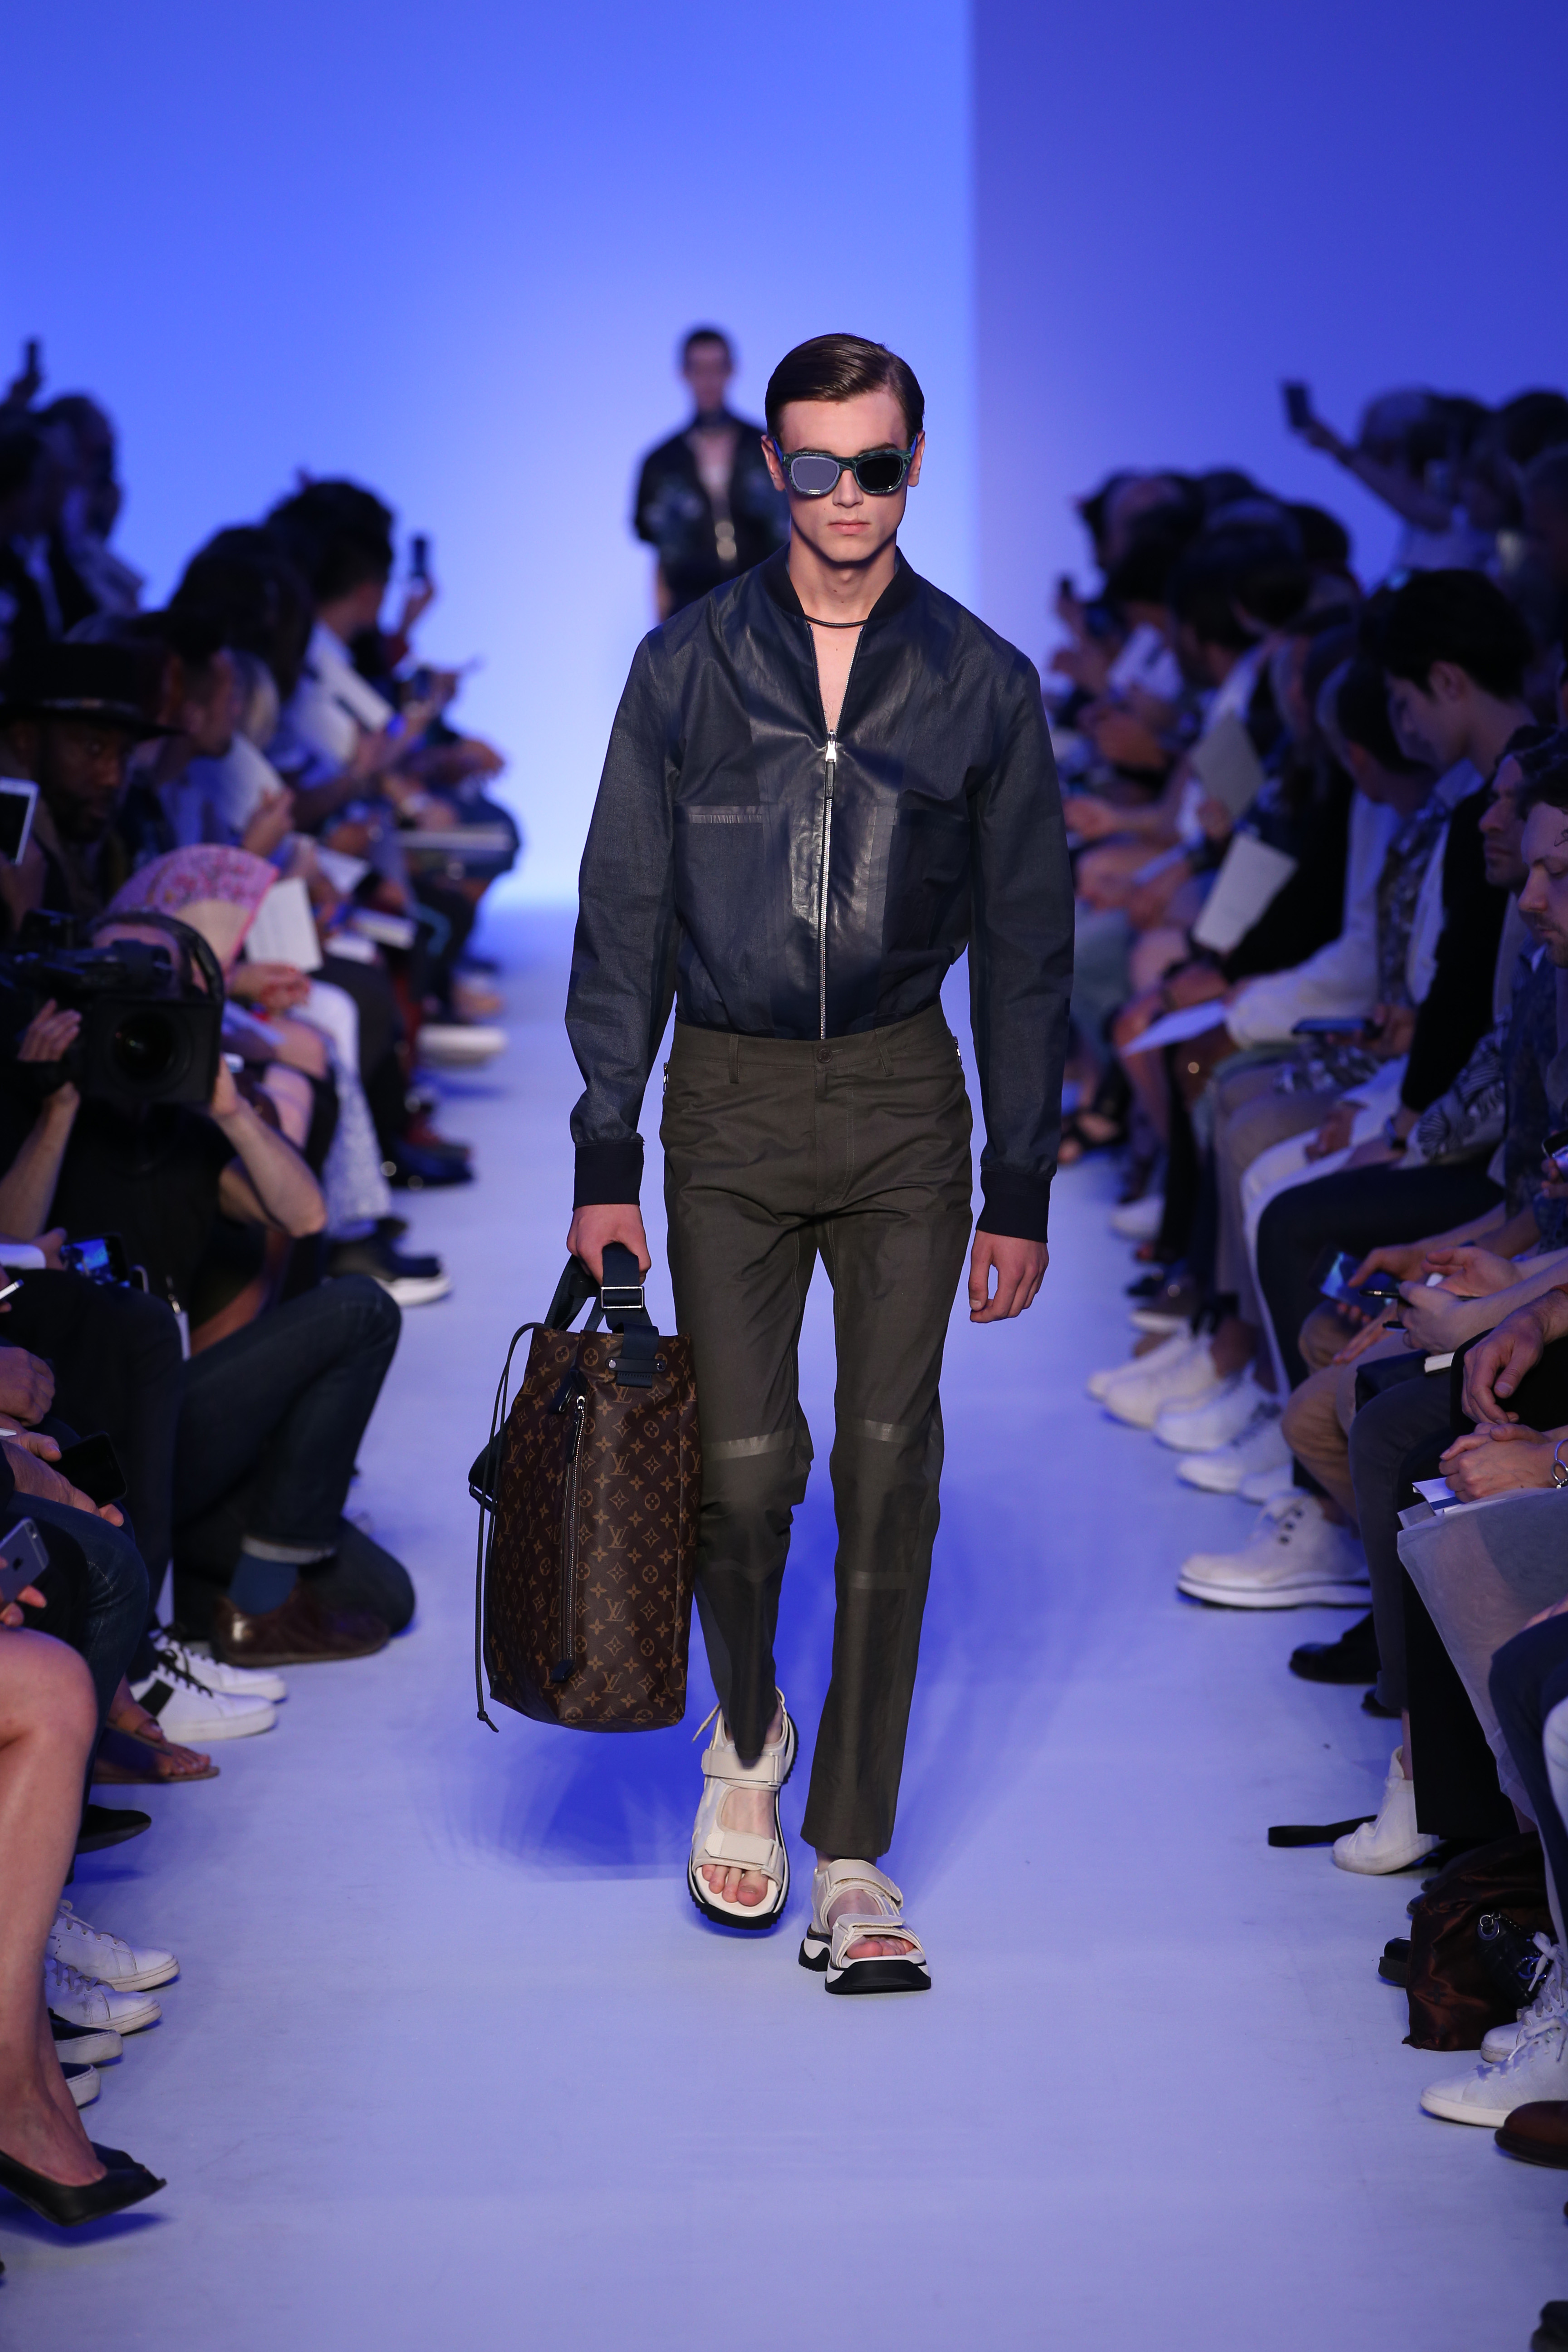 LOUIS VUITTON Men Spring-Summer 2015/2016 Collection © Louis Vuitton Malletier – All rights reserved